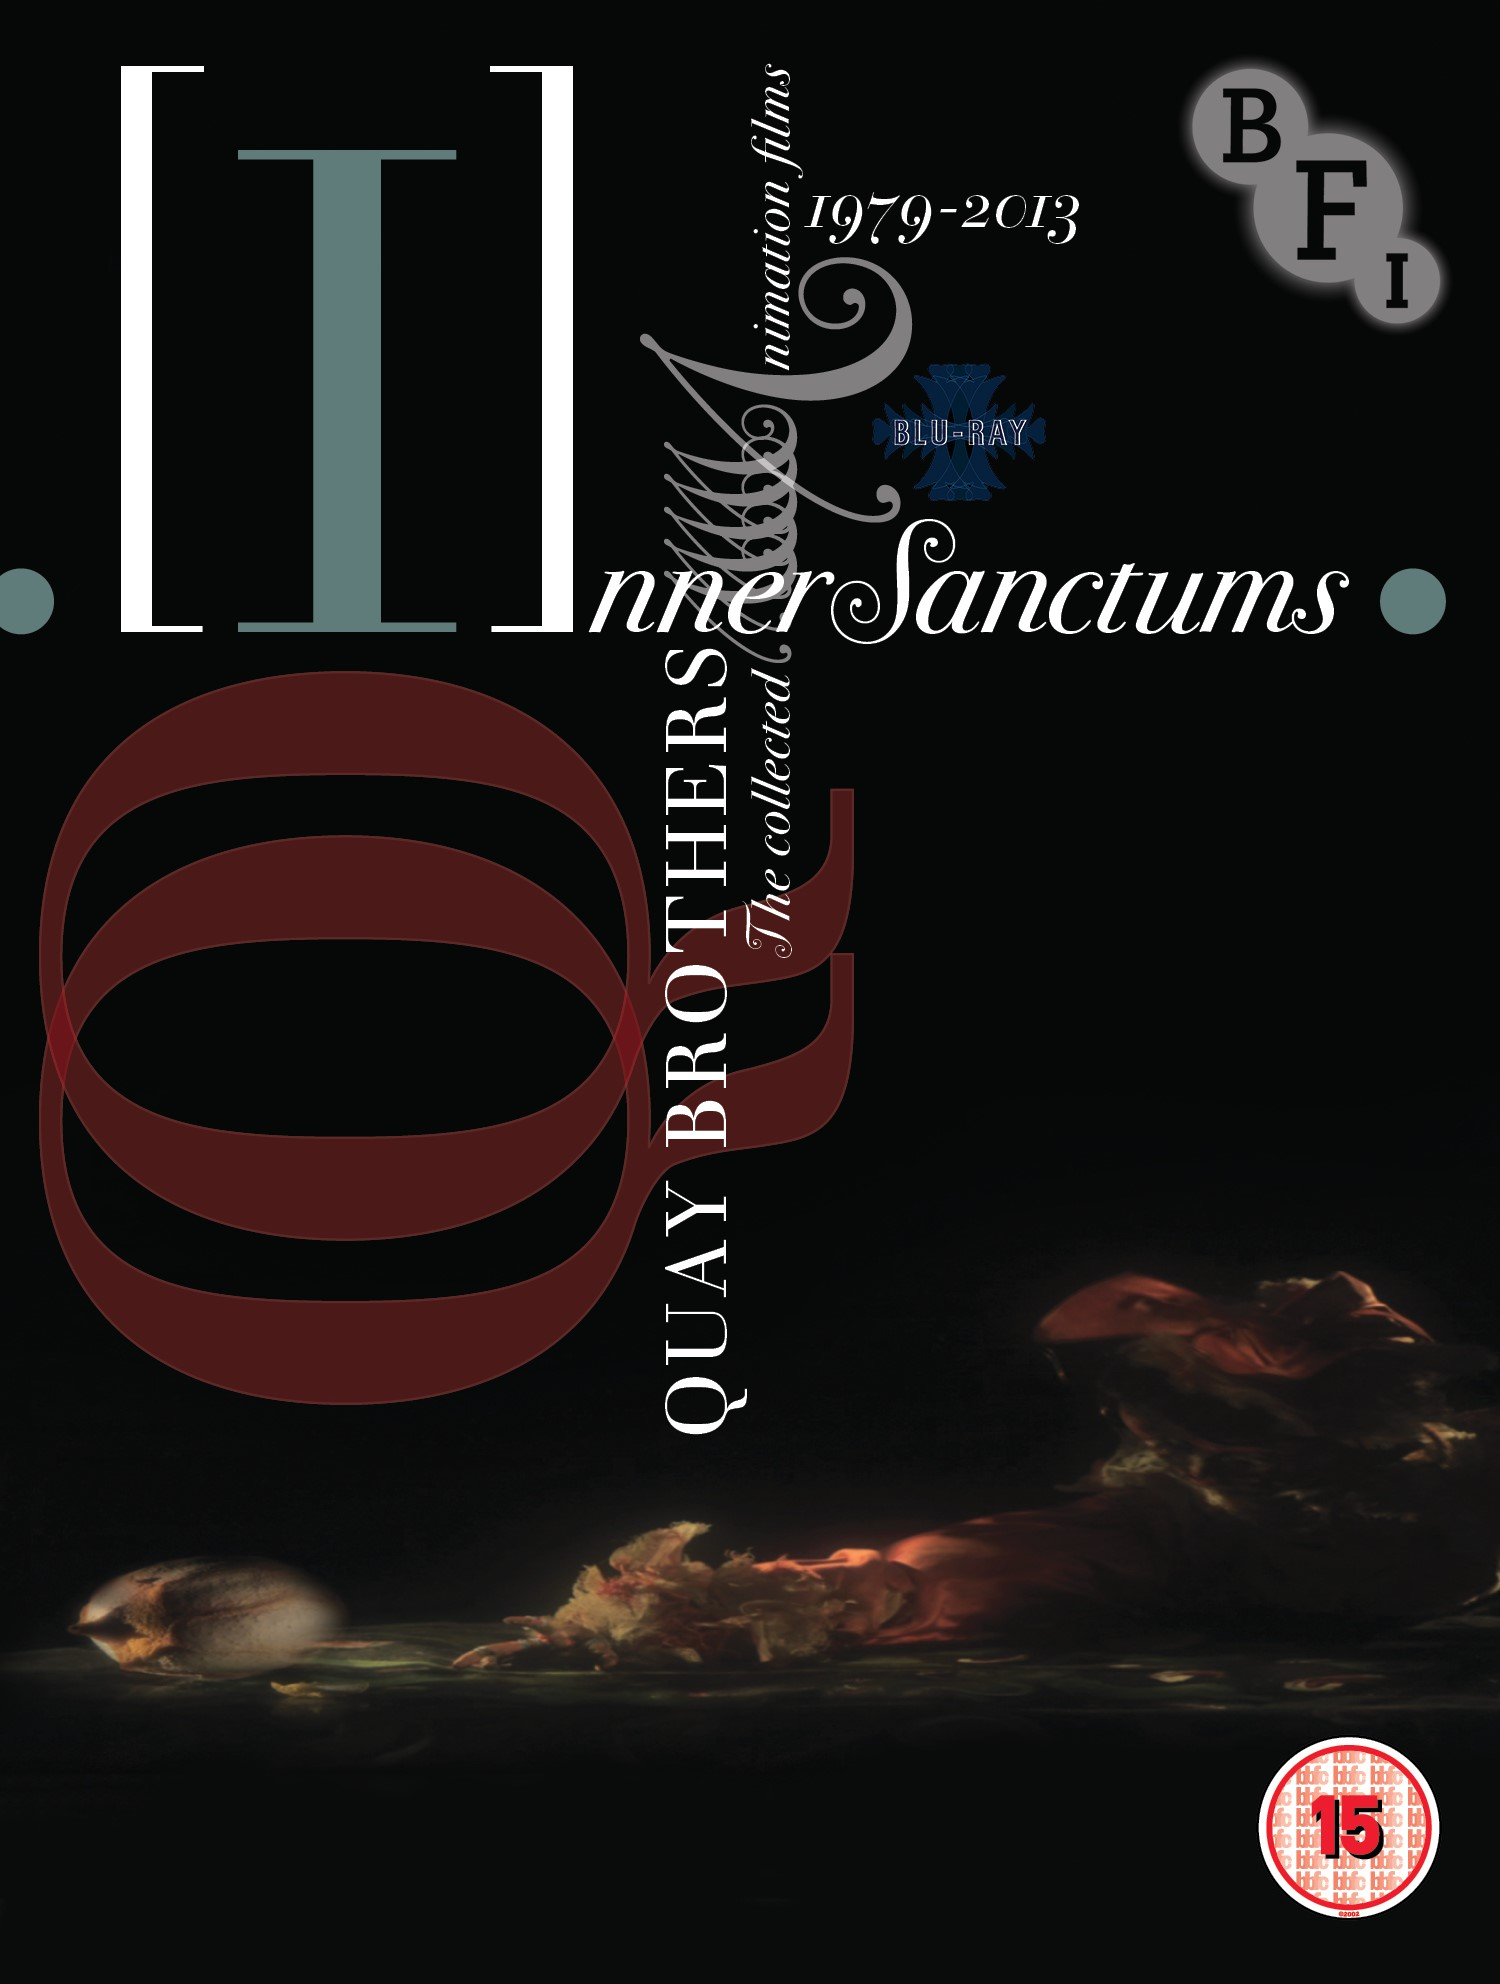 Buy Inner Sanctums Quay Brothers: The collected animated films 1979-2013